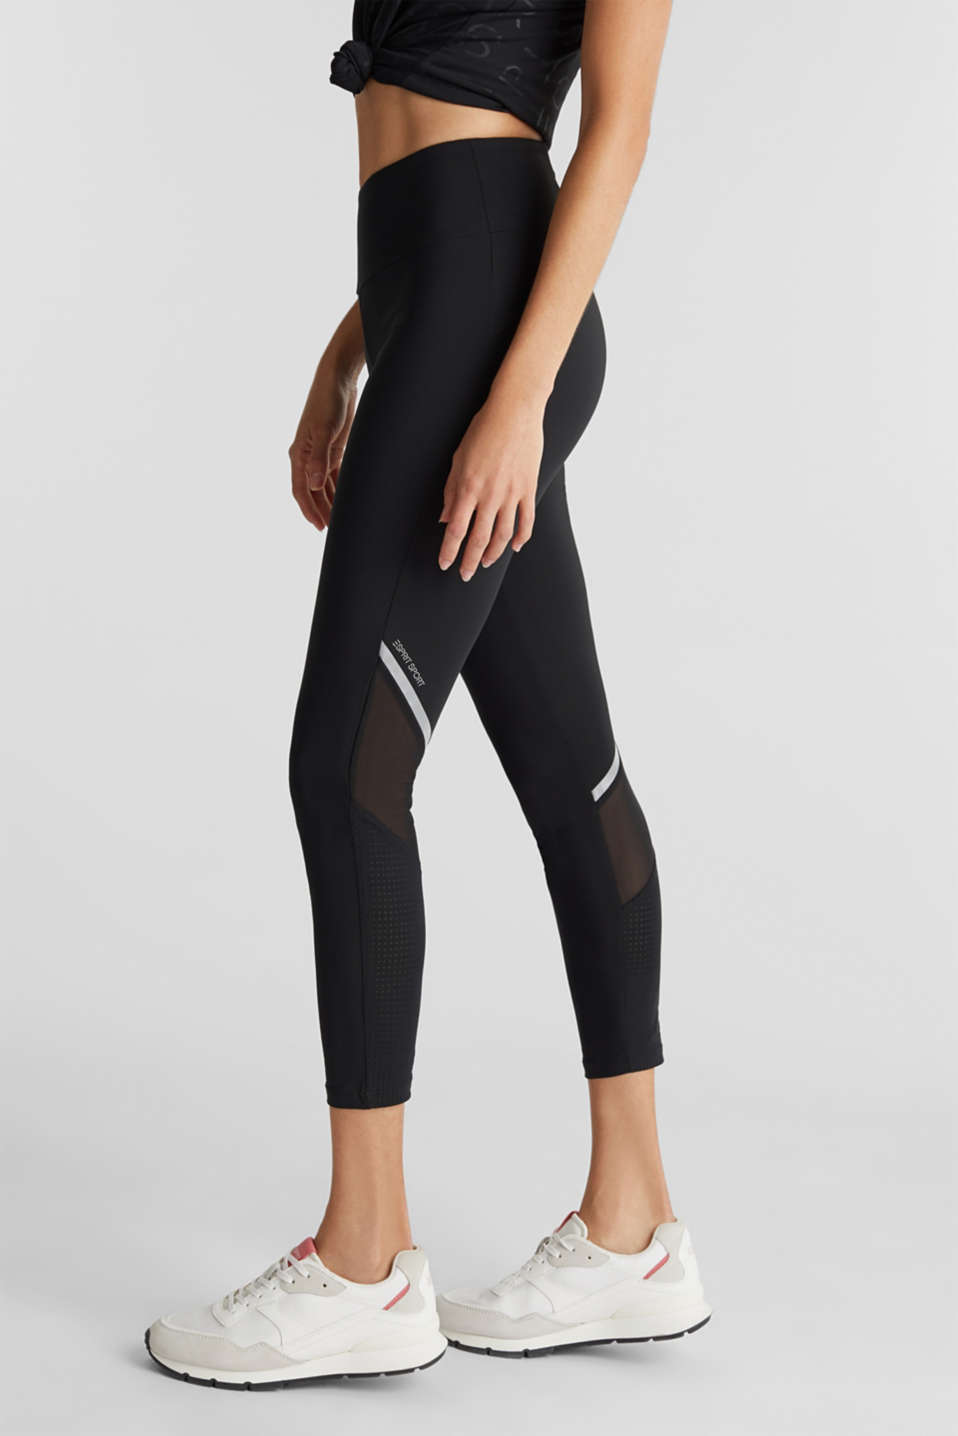 Esprit - Leggings mit Reflektor-Tapes, E-DRY